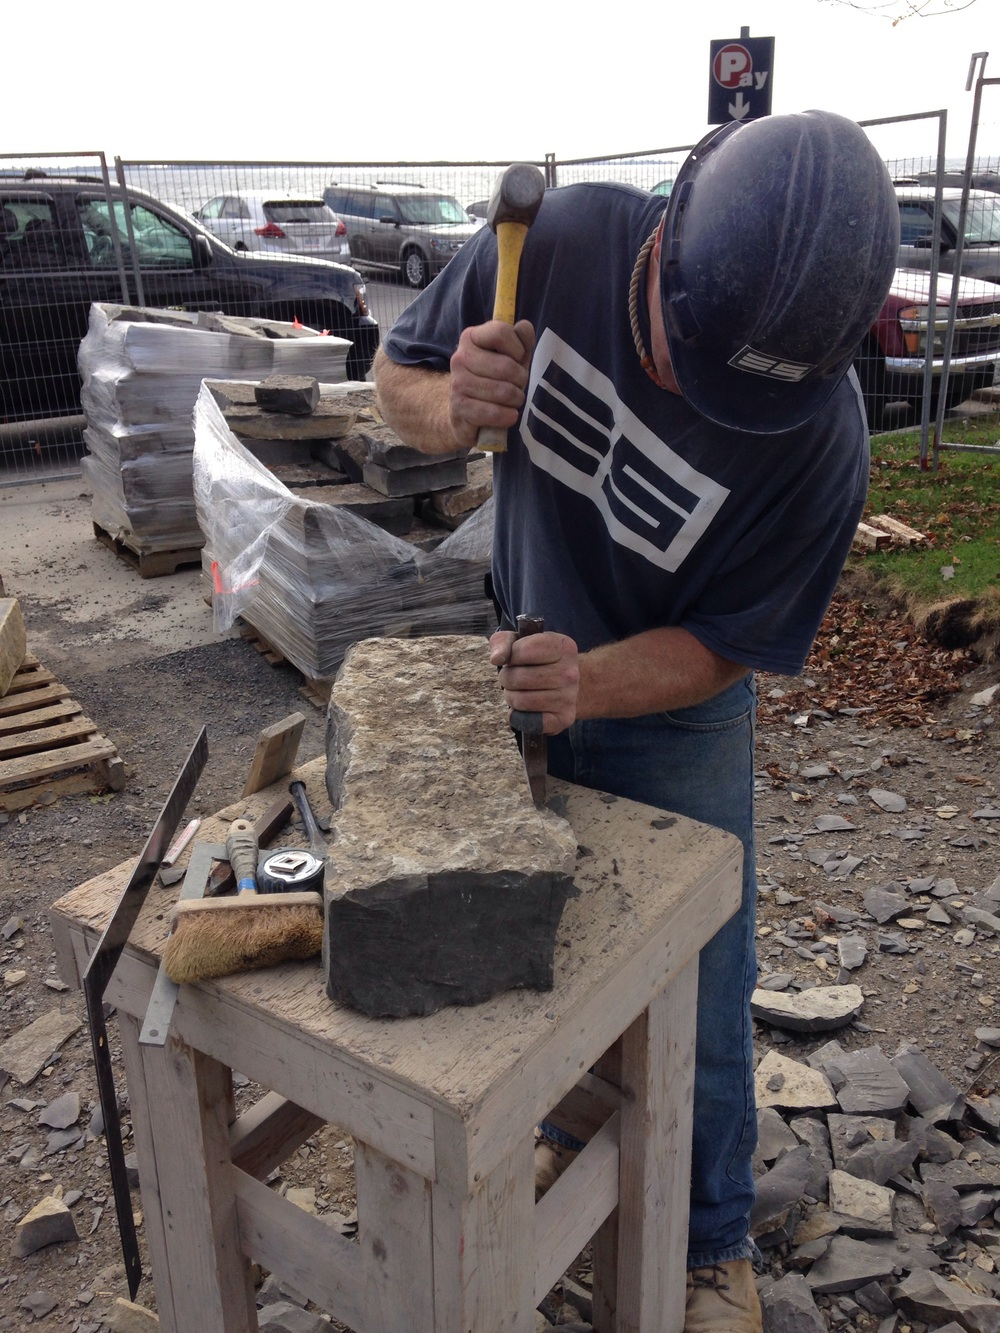 A piece of Kingston Limestone is squared using hand tools. The perimeter of the stone is marked, and excess material is 'pitched' away to ensure all sides are square.